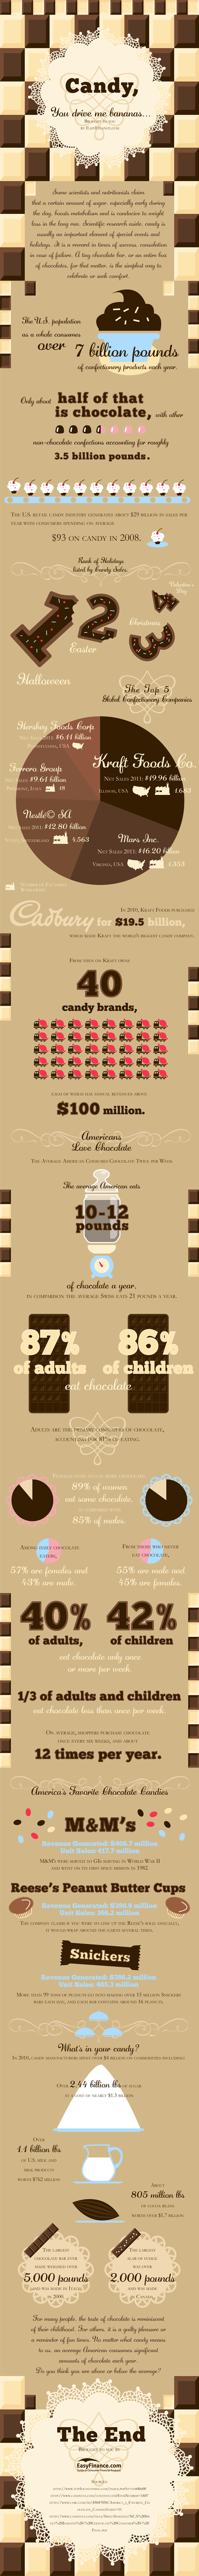 Candy Industry Statistics Cute Candy Bar Sayings and Clever Quotes